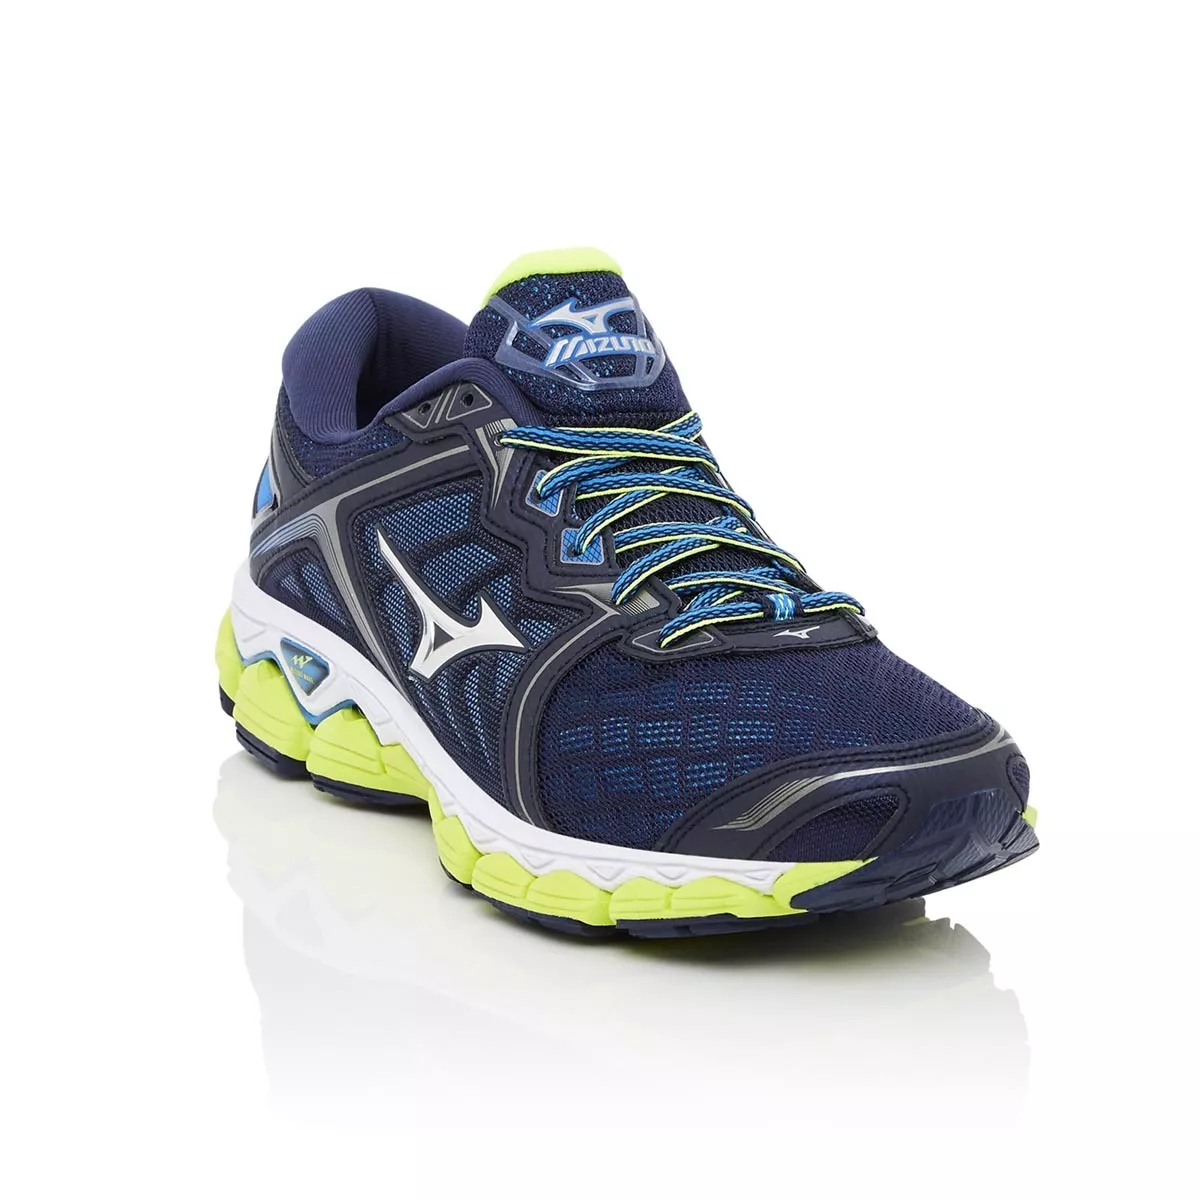 mens mizuno running shoes size 9.5 europe homme opiniones 2018